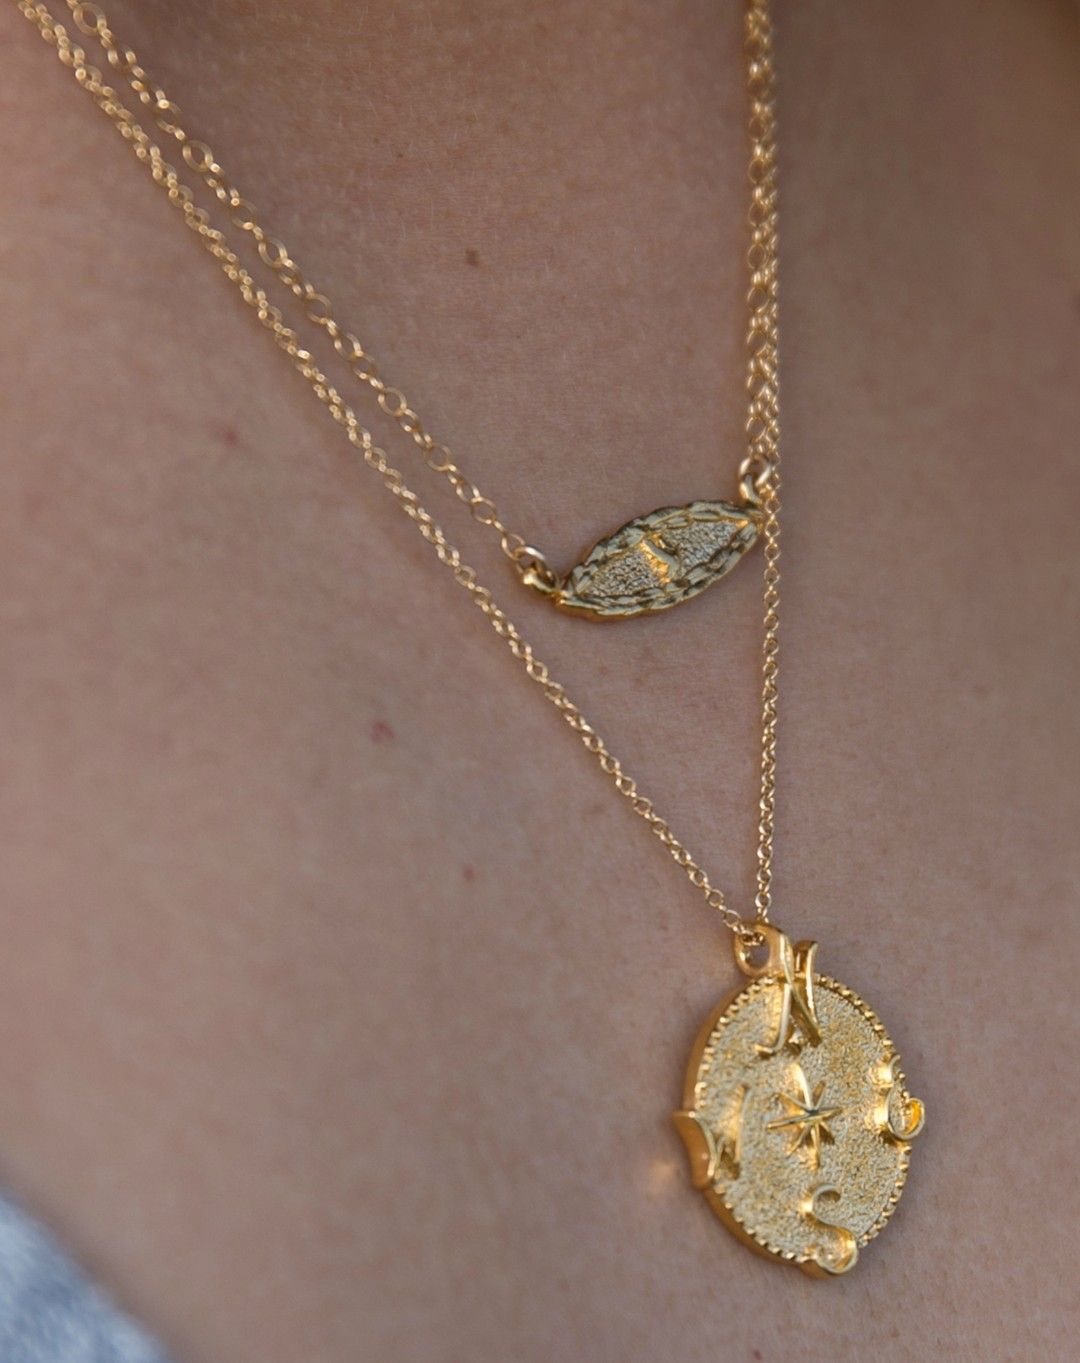 @nathaliesherman posted to Instagram: The beautiful Amor Vincent Omnia Dove Necklace layered with the infamous Compass pendant necklace is a perfect pairing this holiday season.  Amor Vincent Omnia translates to Love Conquers All in Latin. the design is accompanied with a Dove, the symbol for peace, in the center.  #intrigue #loveconquersall #dovenecklace #peacenecklace #symbolicjewelry #worldpeace #omnia #symbolism #symbolicdesigns #madeinamerica #madeintheusa #americanmade #madeinusa #giftsfor